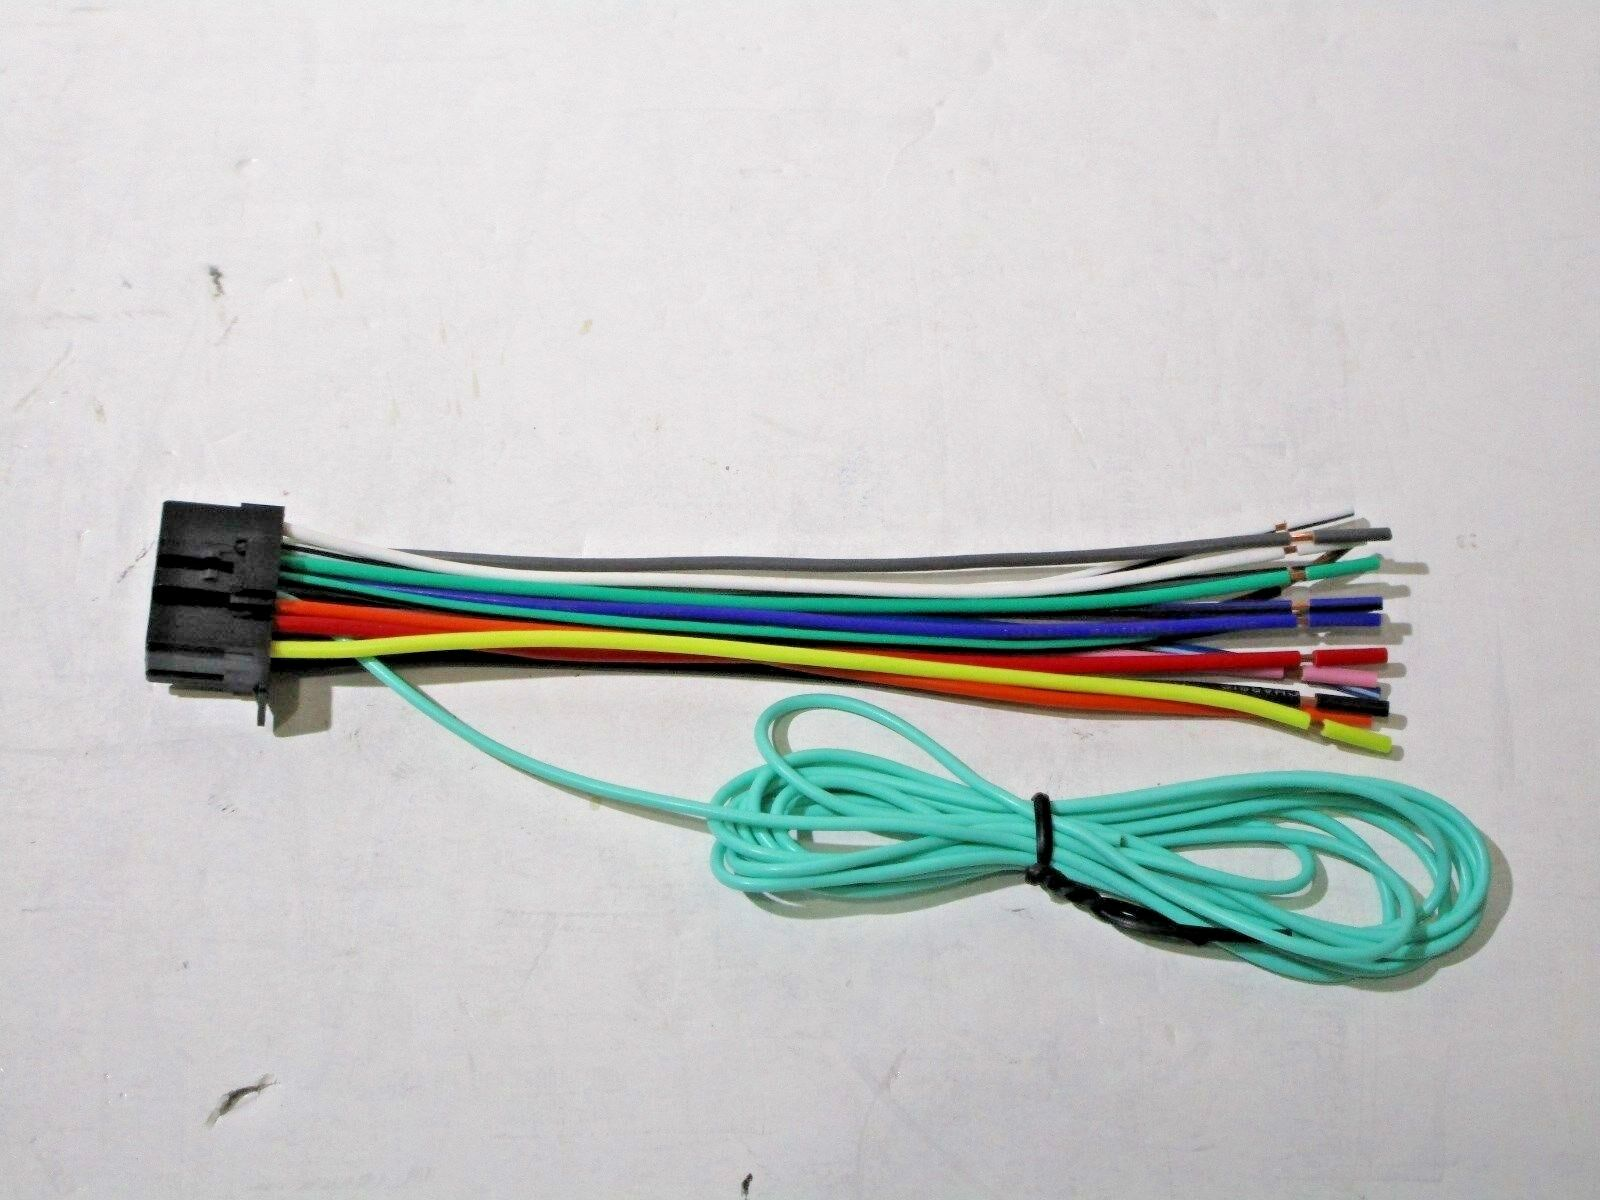 Pioneer Wiring Harness For 5800 Free Download Diagrams Avh X1700s Diagram X5800bhs Wire New Cr2 U2022 11 29 Picclick At Deh 16